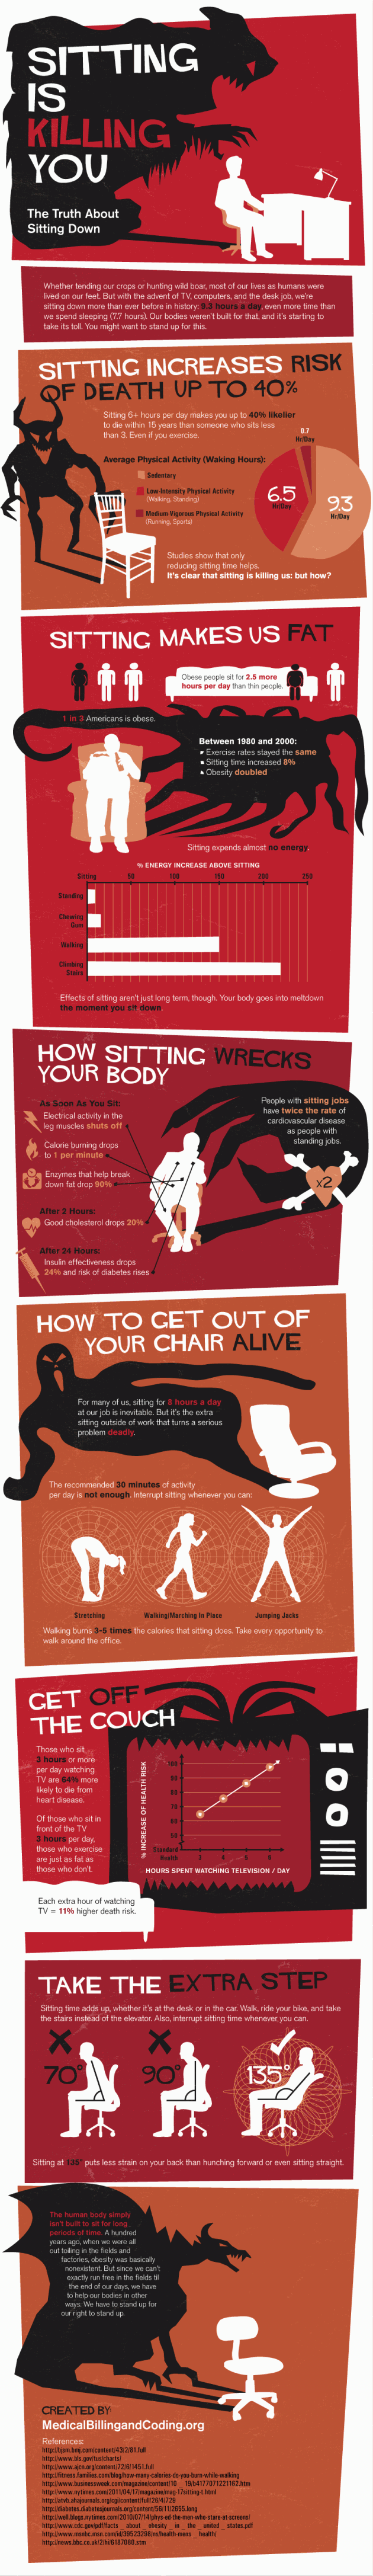 sitting is killing you 630x4347 The Truth About Sitting Down [Infographic]